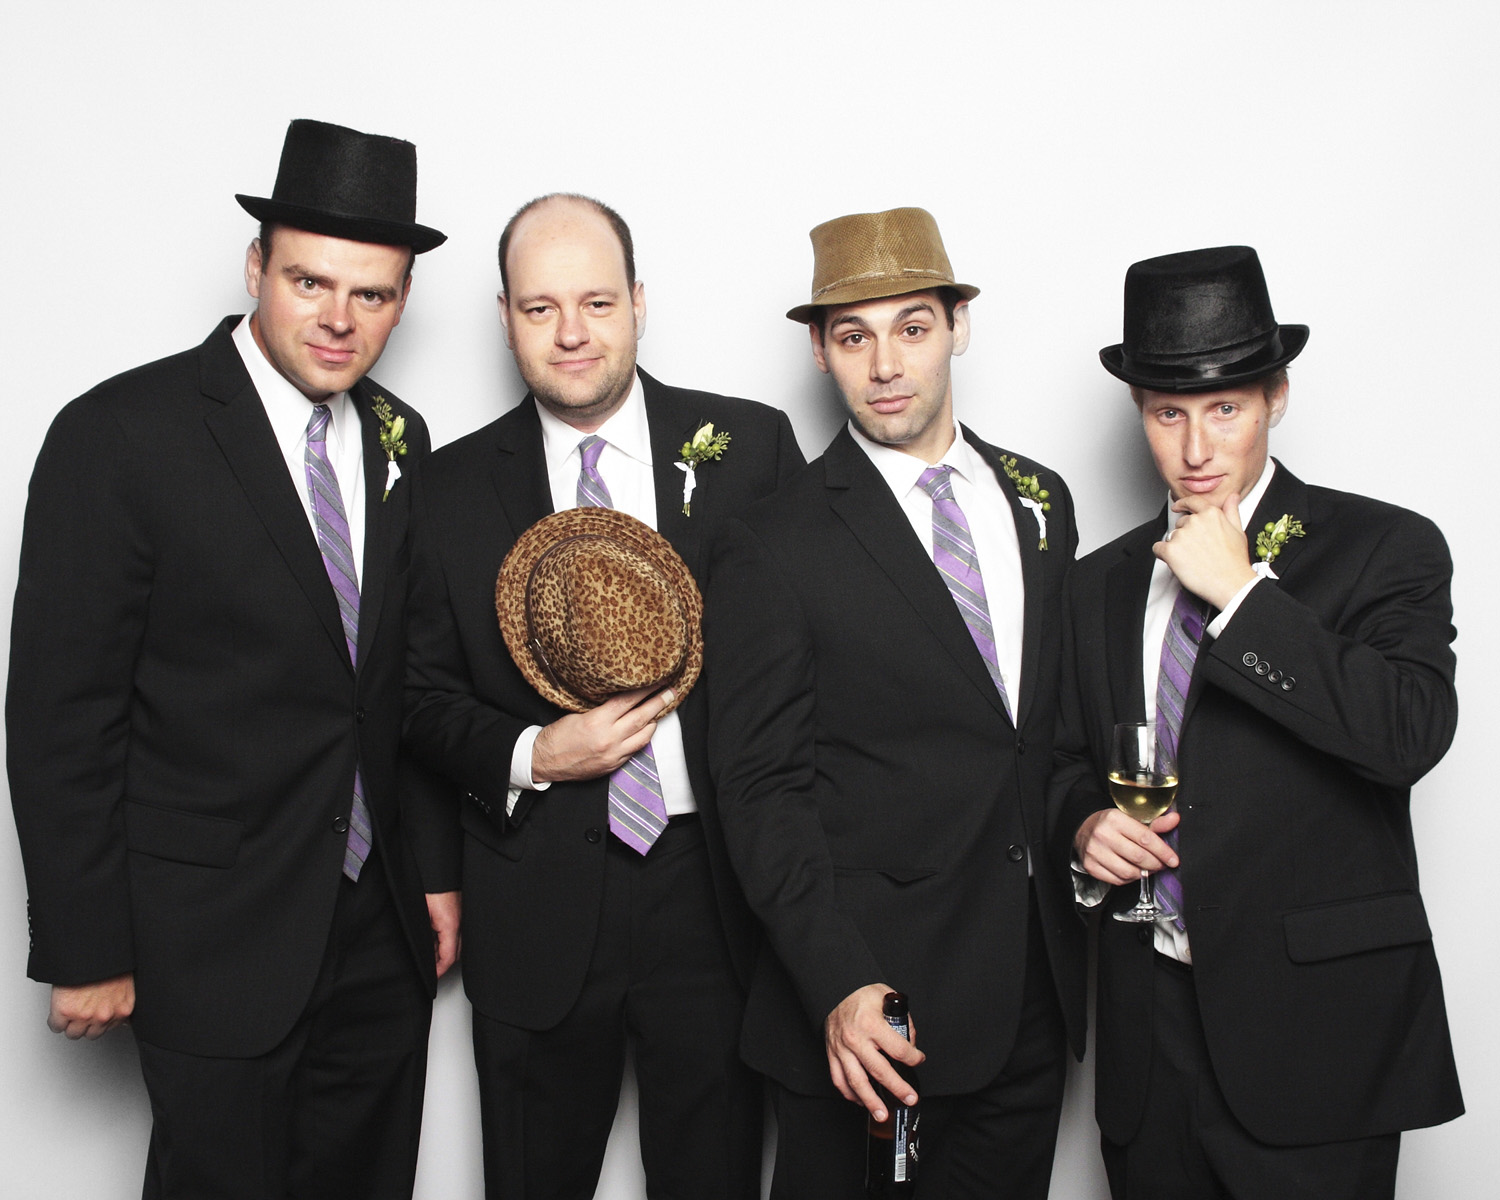 NYC Photo Booth Madmen